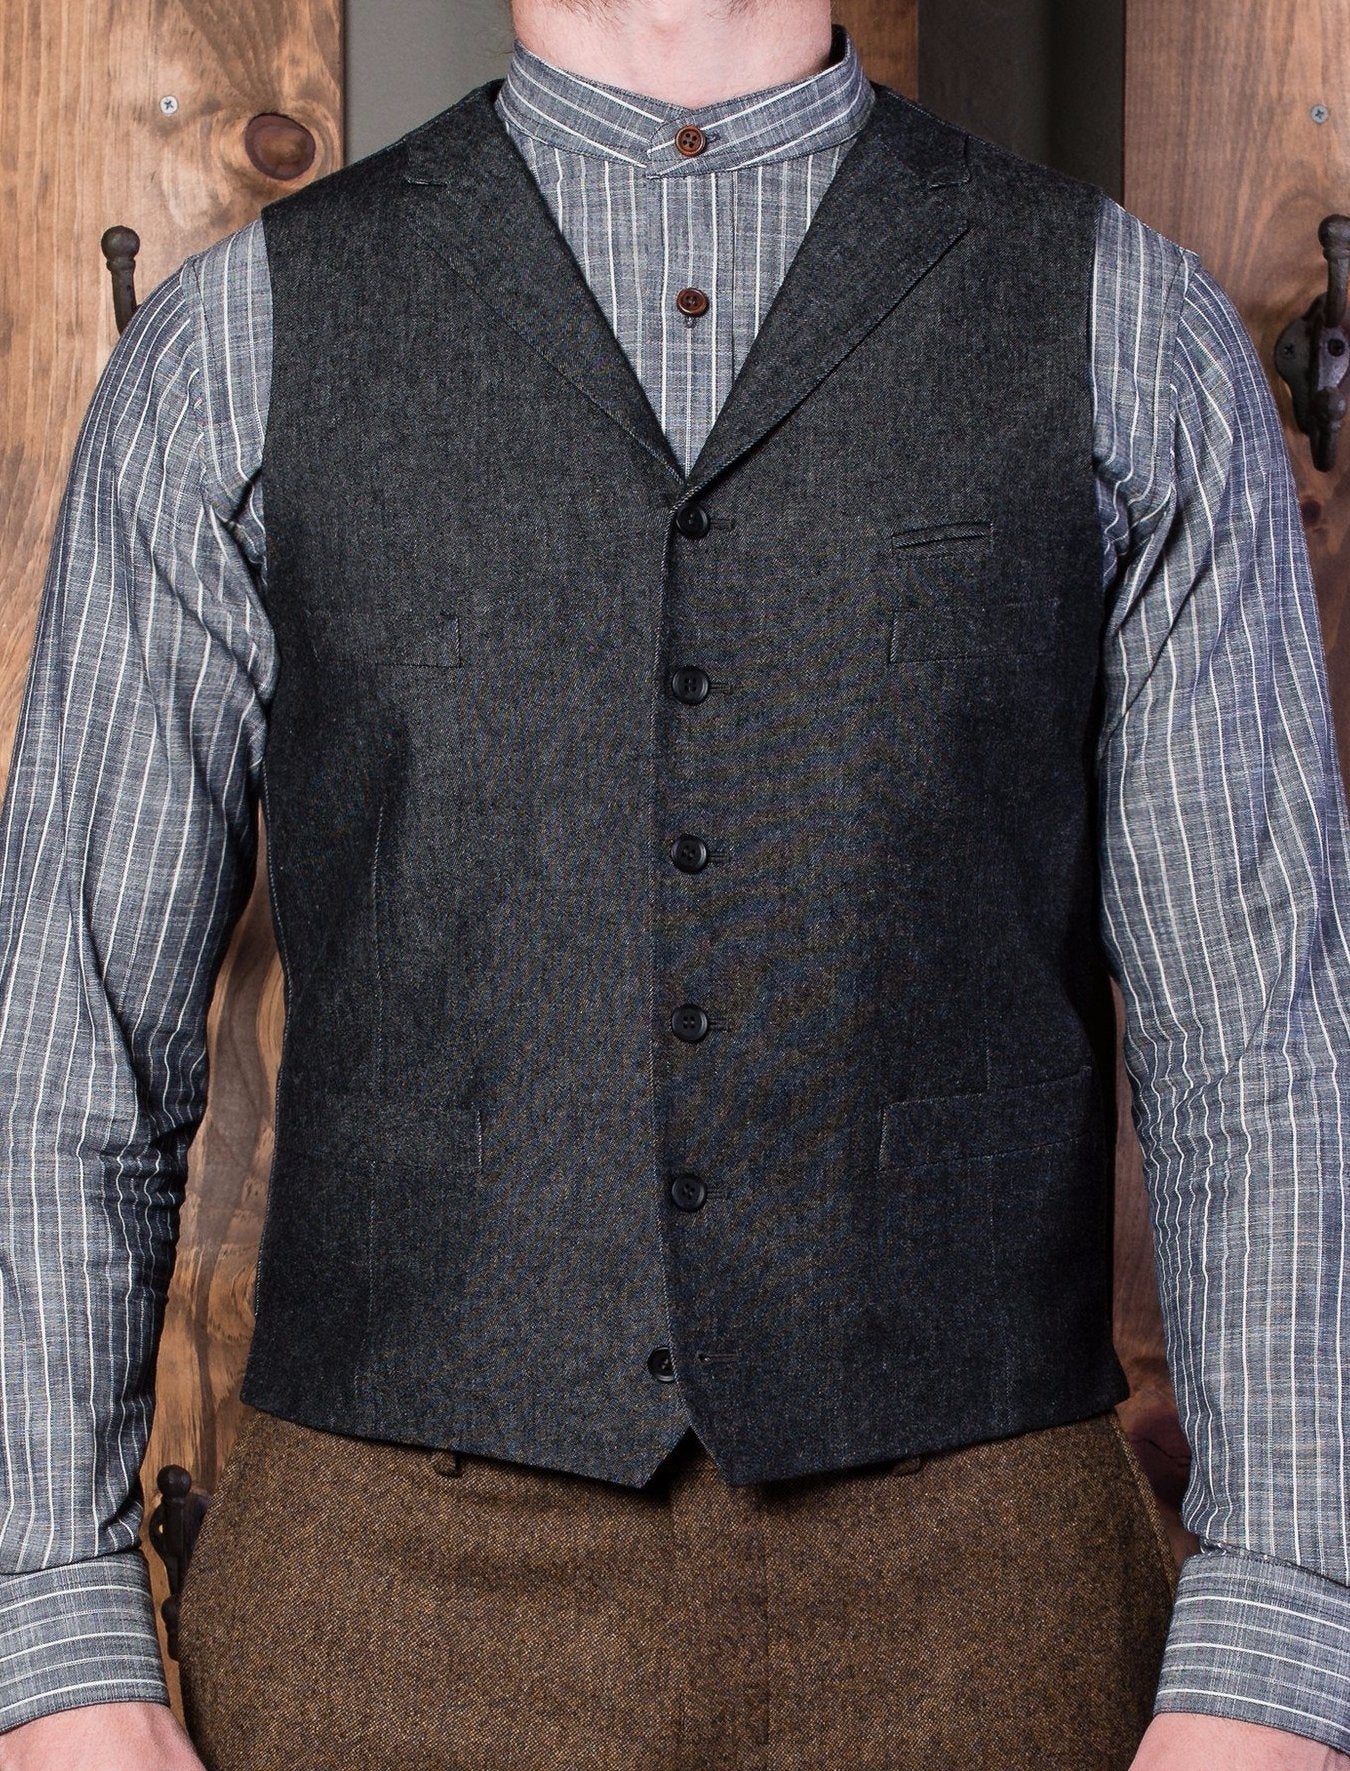 Bykowski Tailor & Garb Gatsby peaky blinders Made in USA lapel vest heritage clothing Handcrafted Edwardian Denim Casual 1910's prohibition  1800's slim tailored fit waistcoat